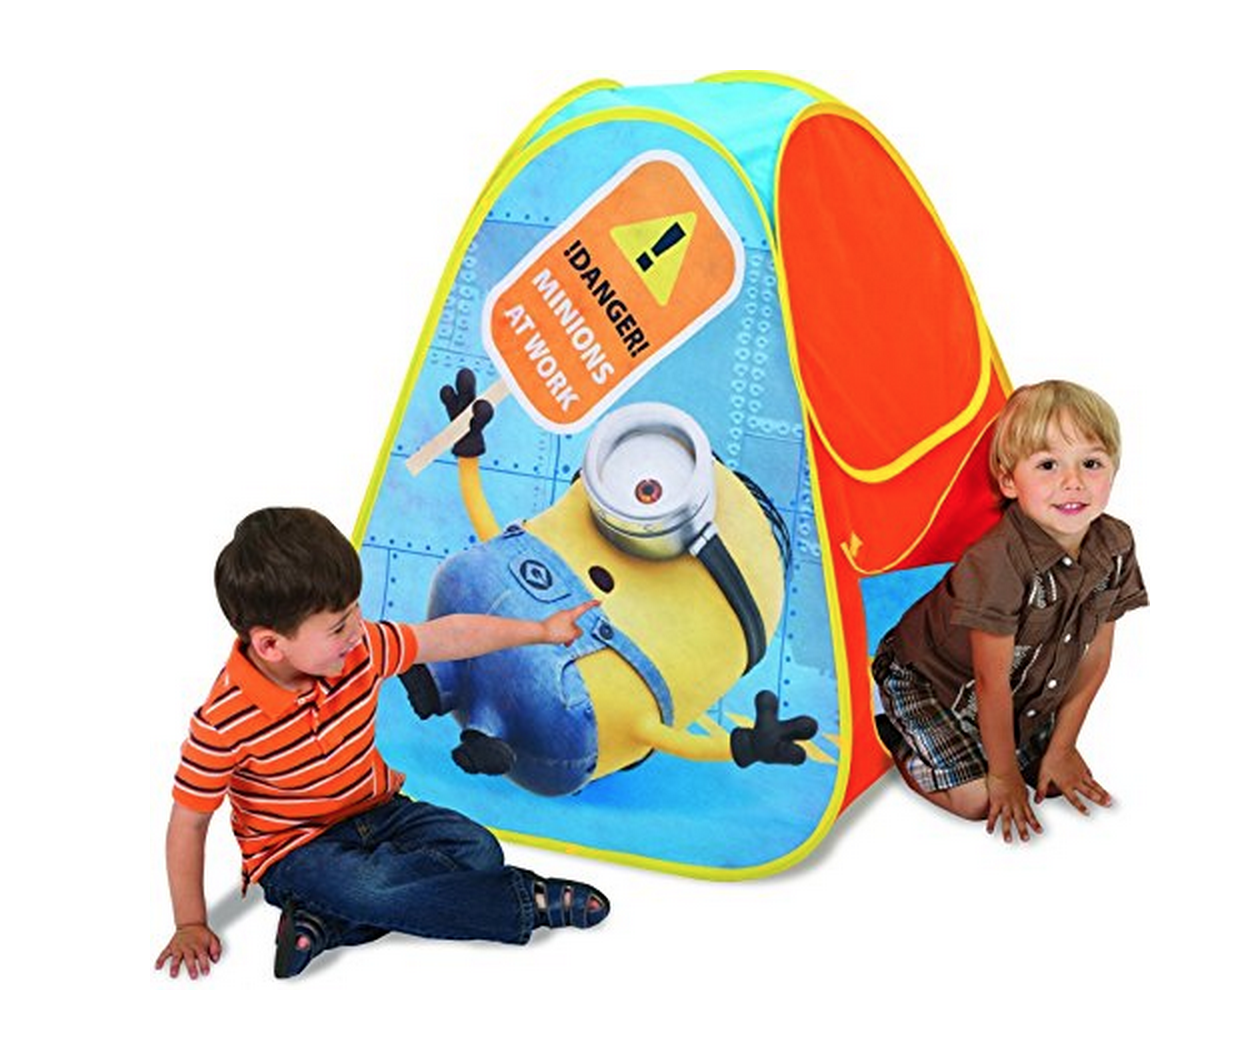 Playhut Despicable Me Minions Classic Hideaway Only $7.05 (Reg. $14.99!)